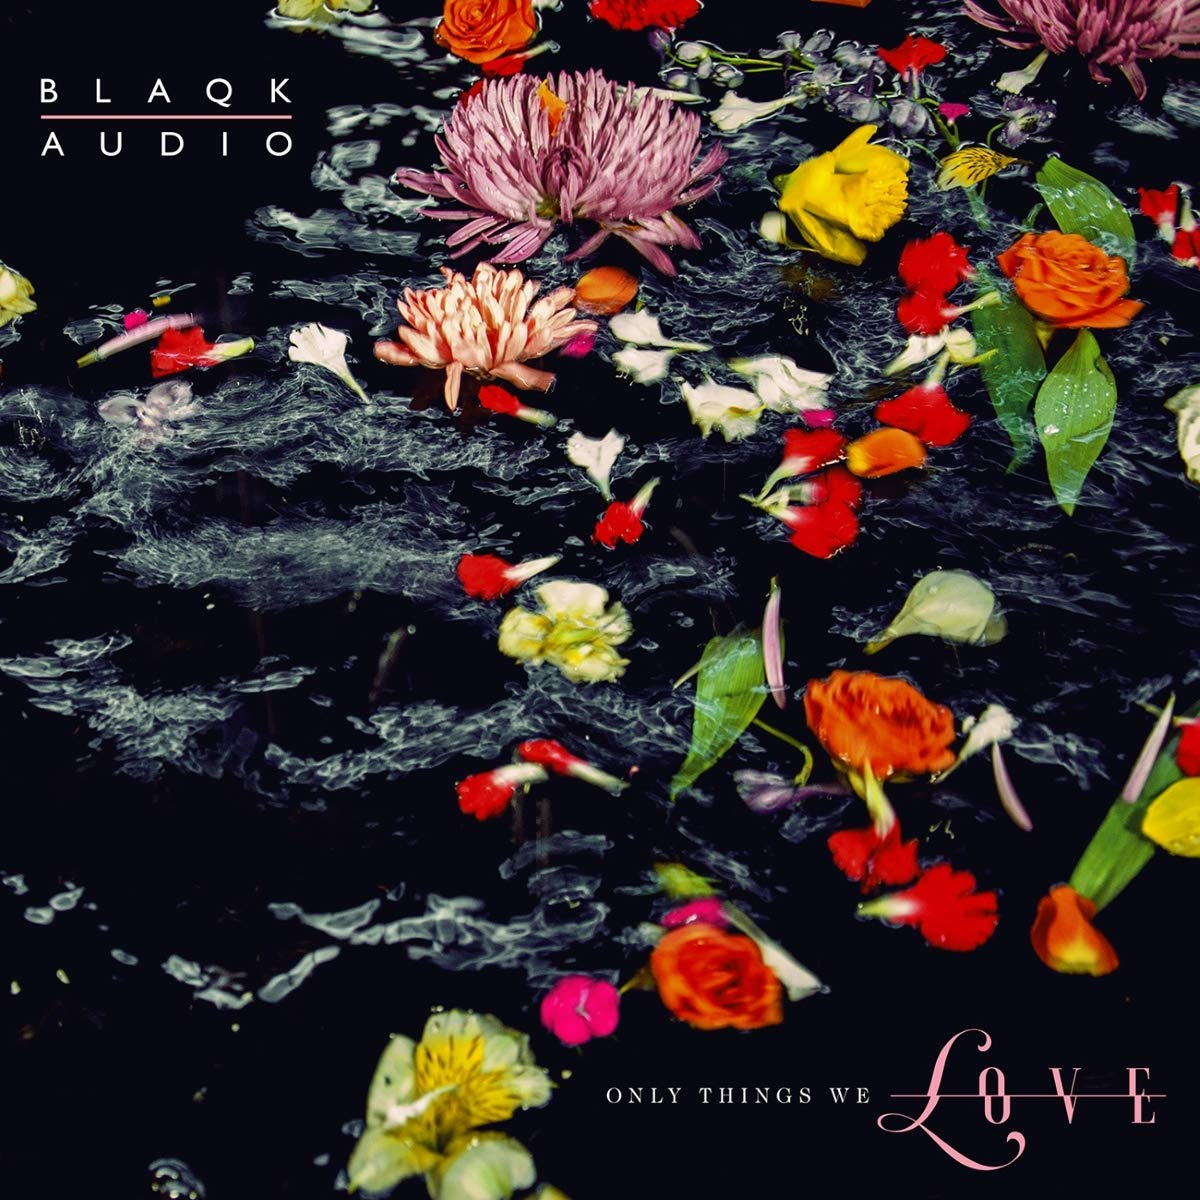 Blaqk Audio - Only Things We Love [Limited Edition Water Picture Disc LP]